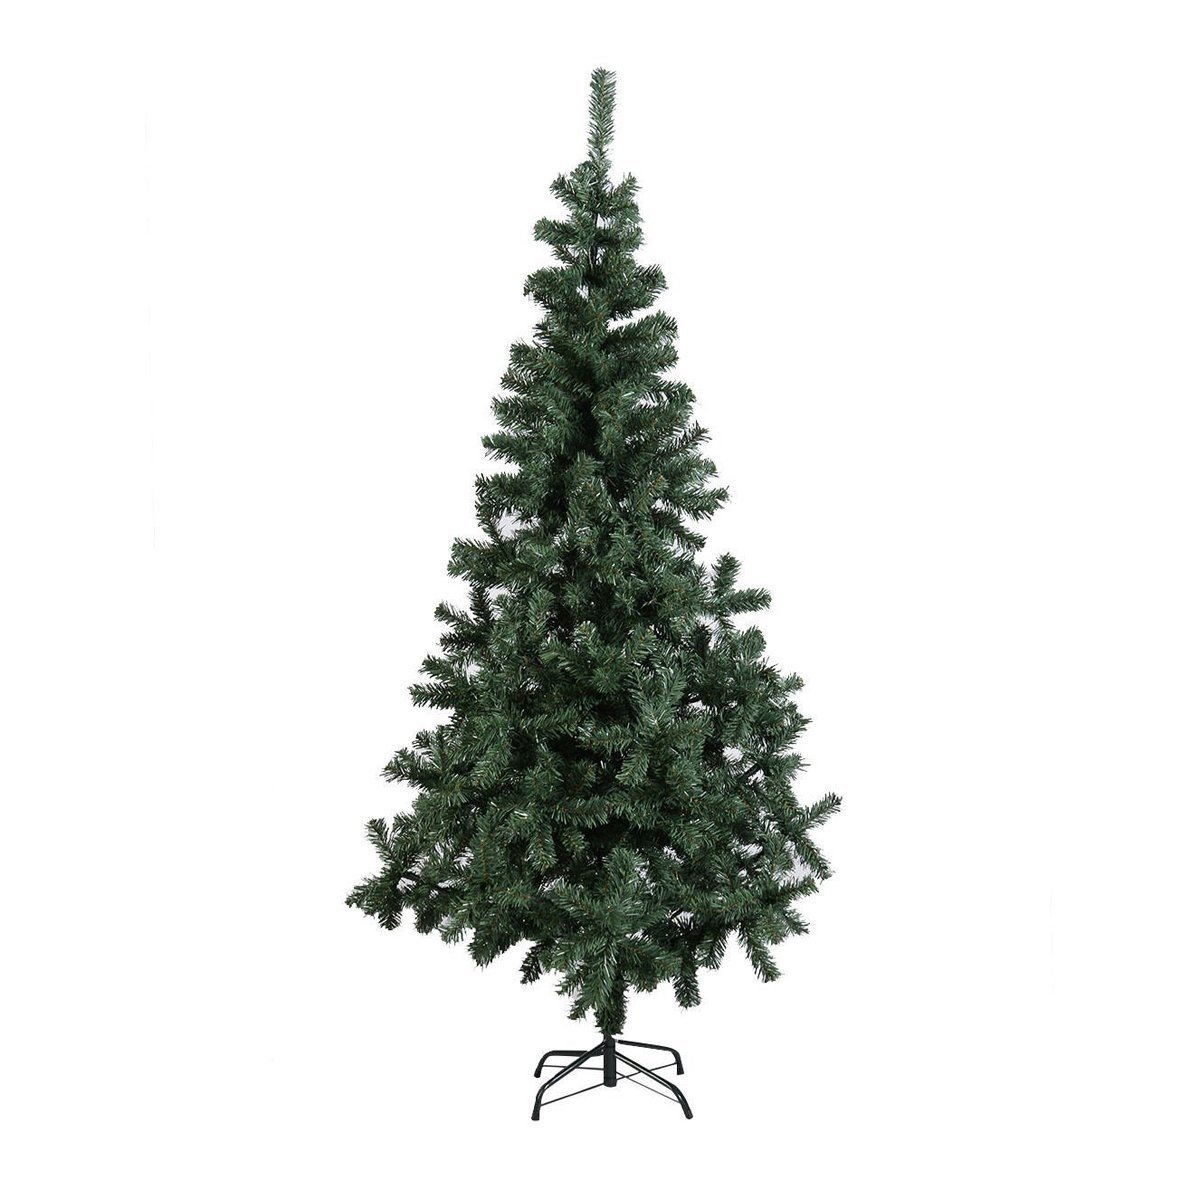 Cheap Christmas Tree 7 Ft, find Christmas Tree 7 Ft deals on line at ...